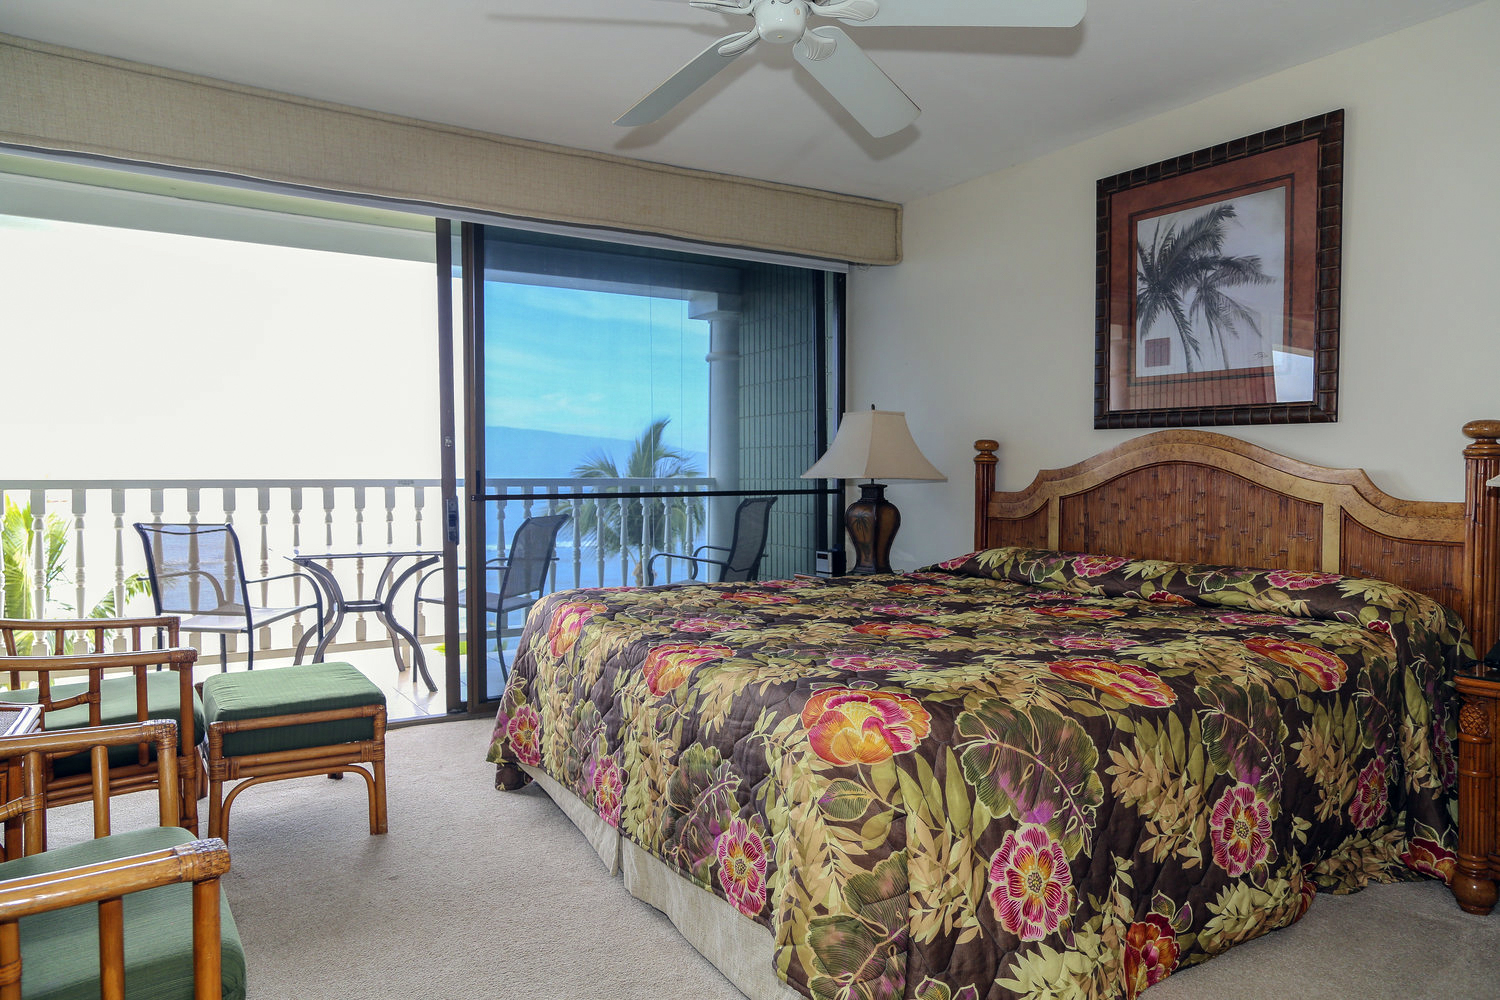 lahaina-shores-beach-resort-maui-LS507-5.jpg